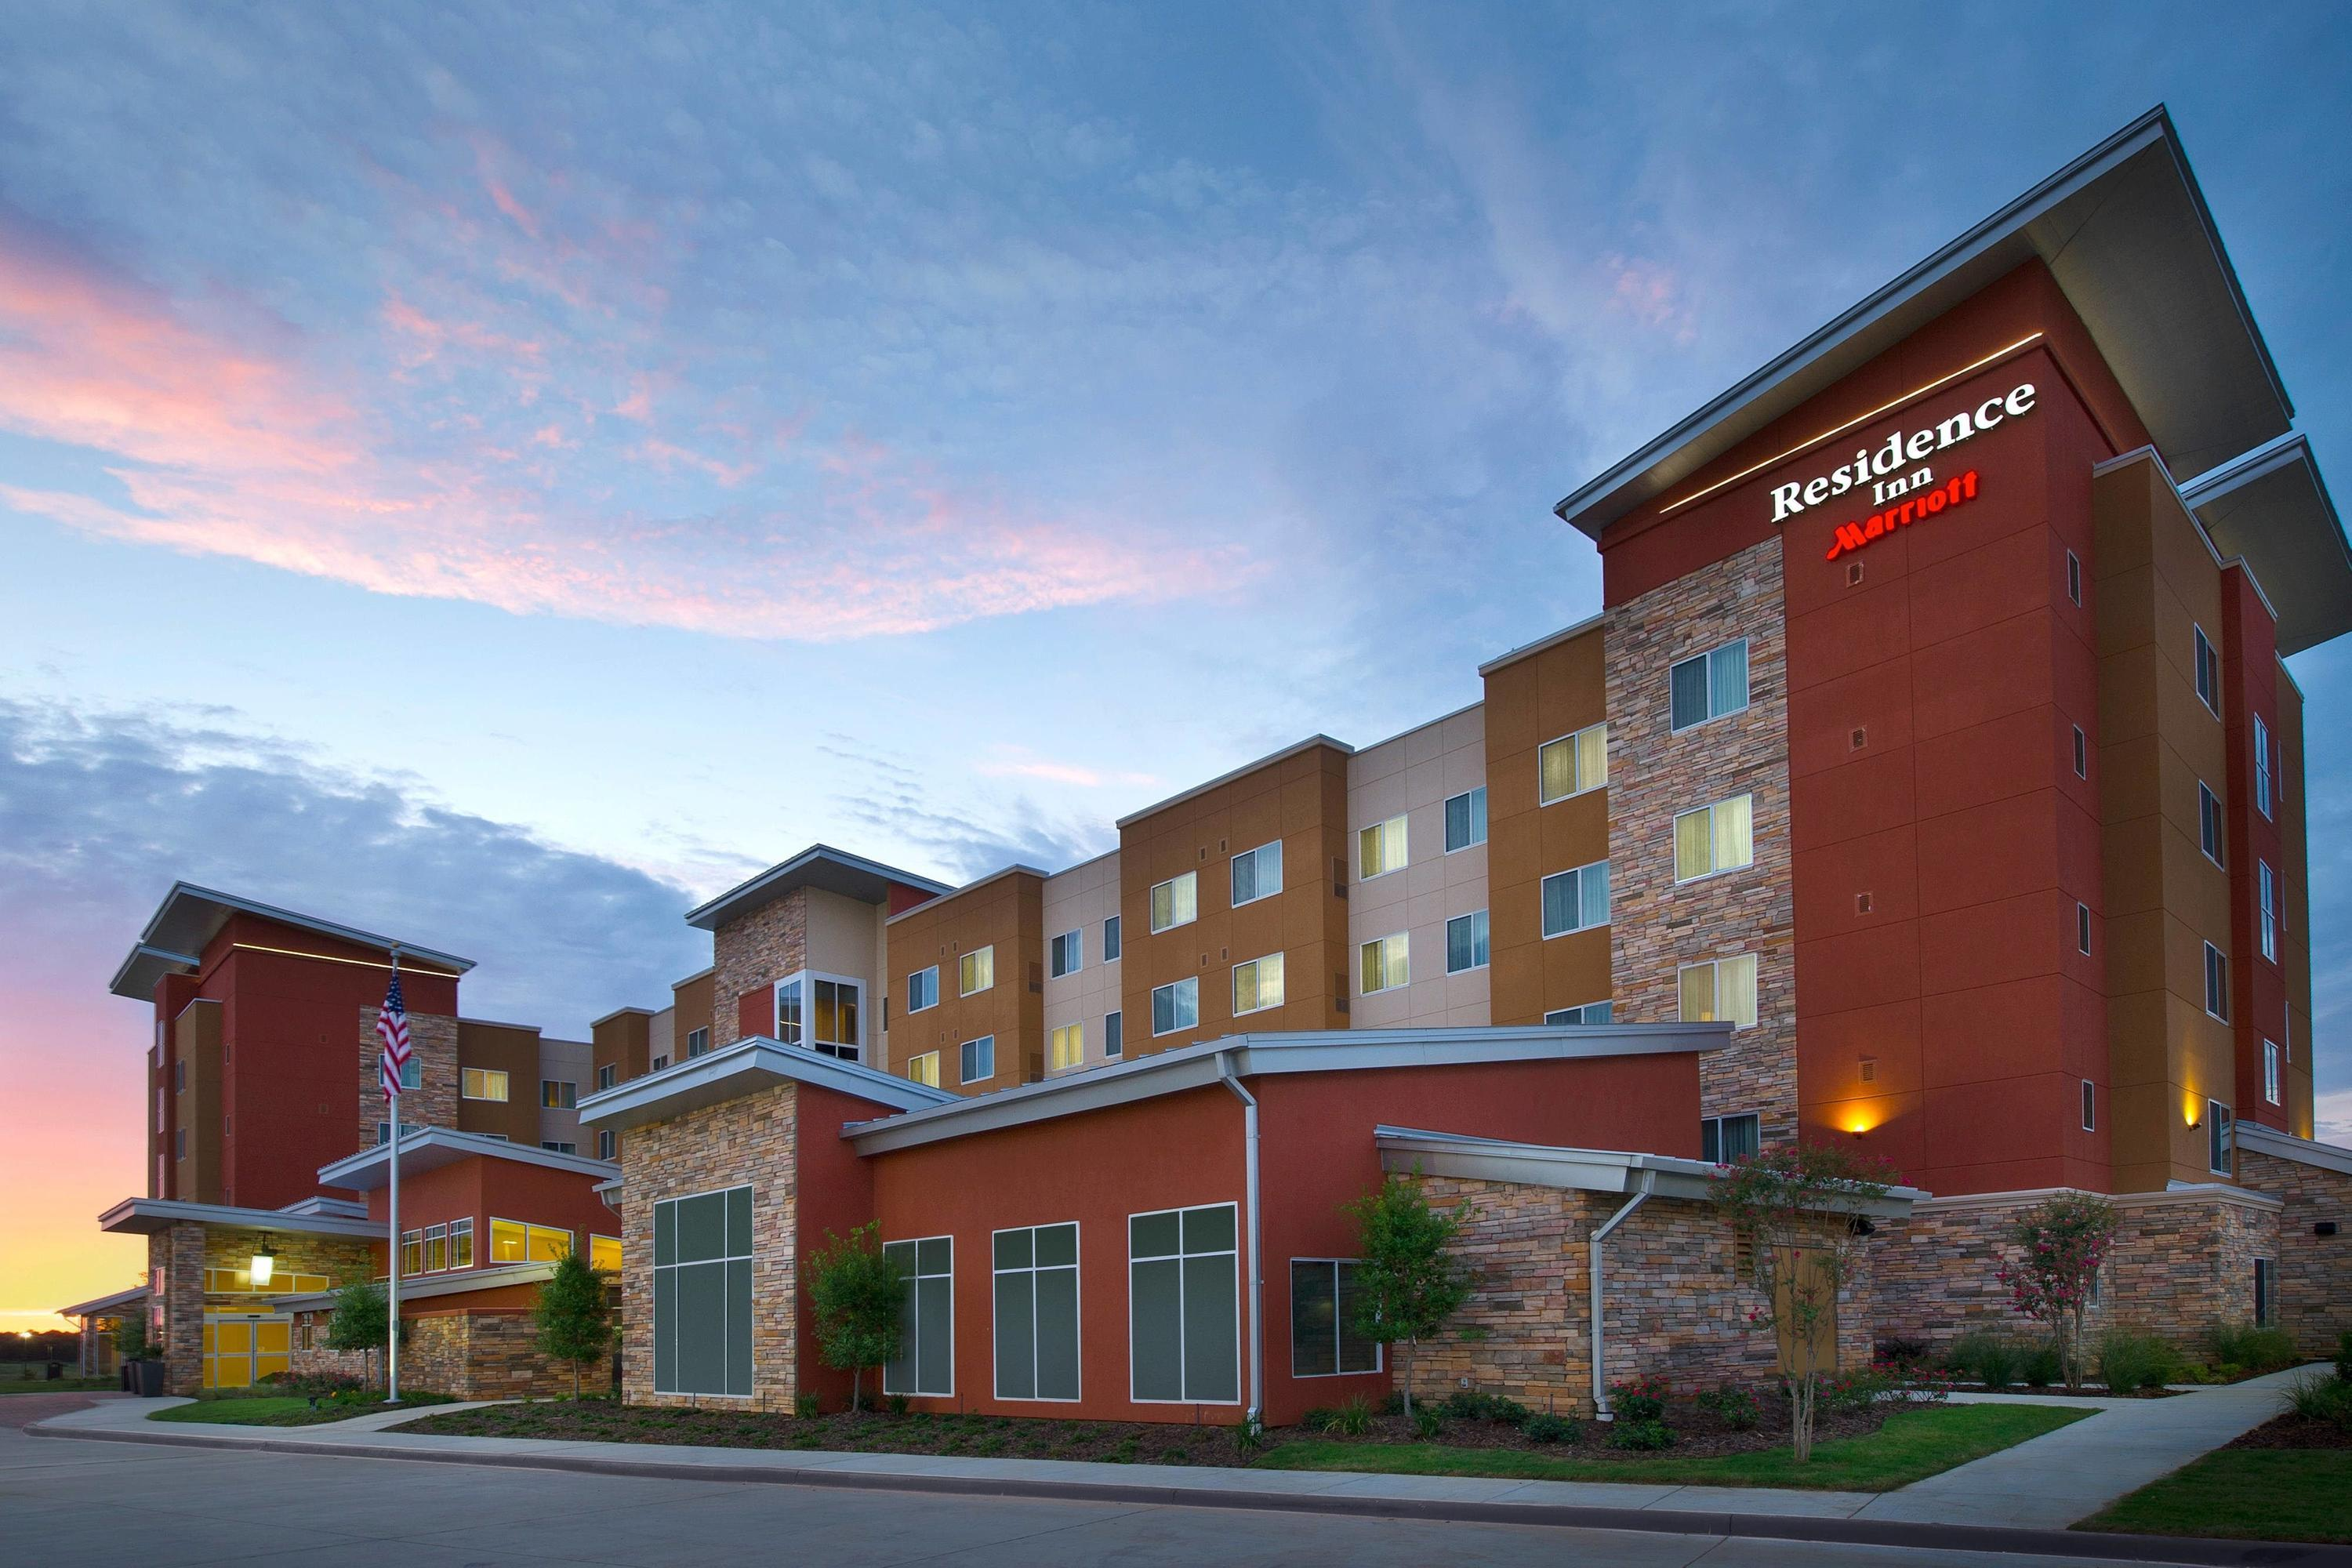 Residence Inn by Marriott Texarkana